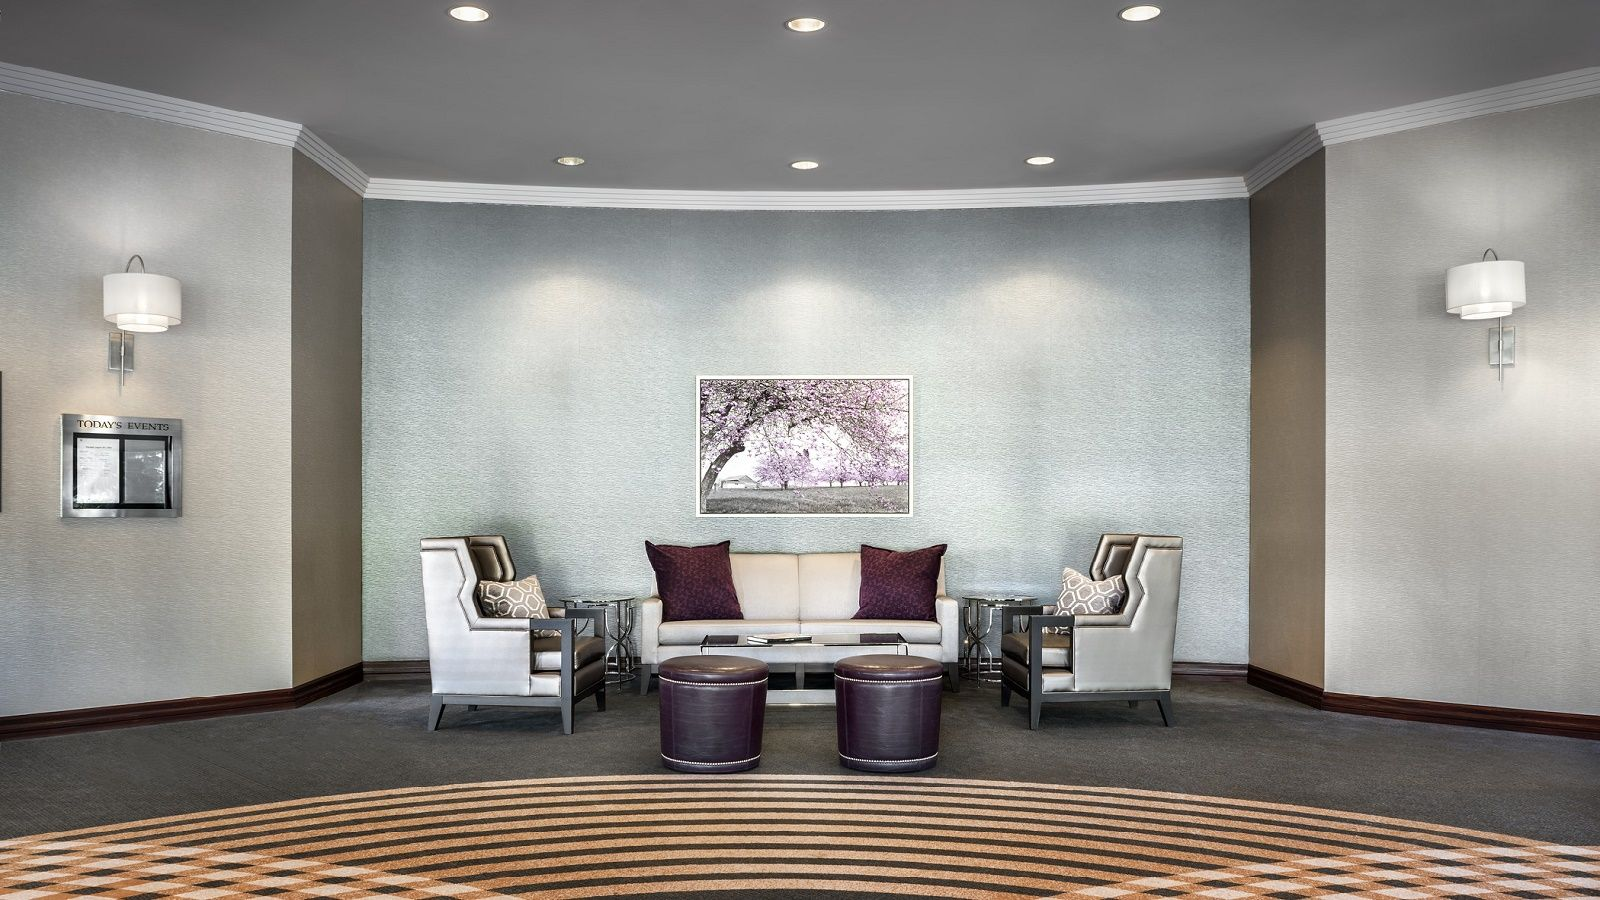 Event Venues Toronto - Toronto Airport Meetings Common Foyer Area - Entrance